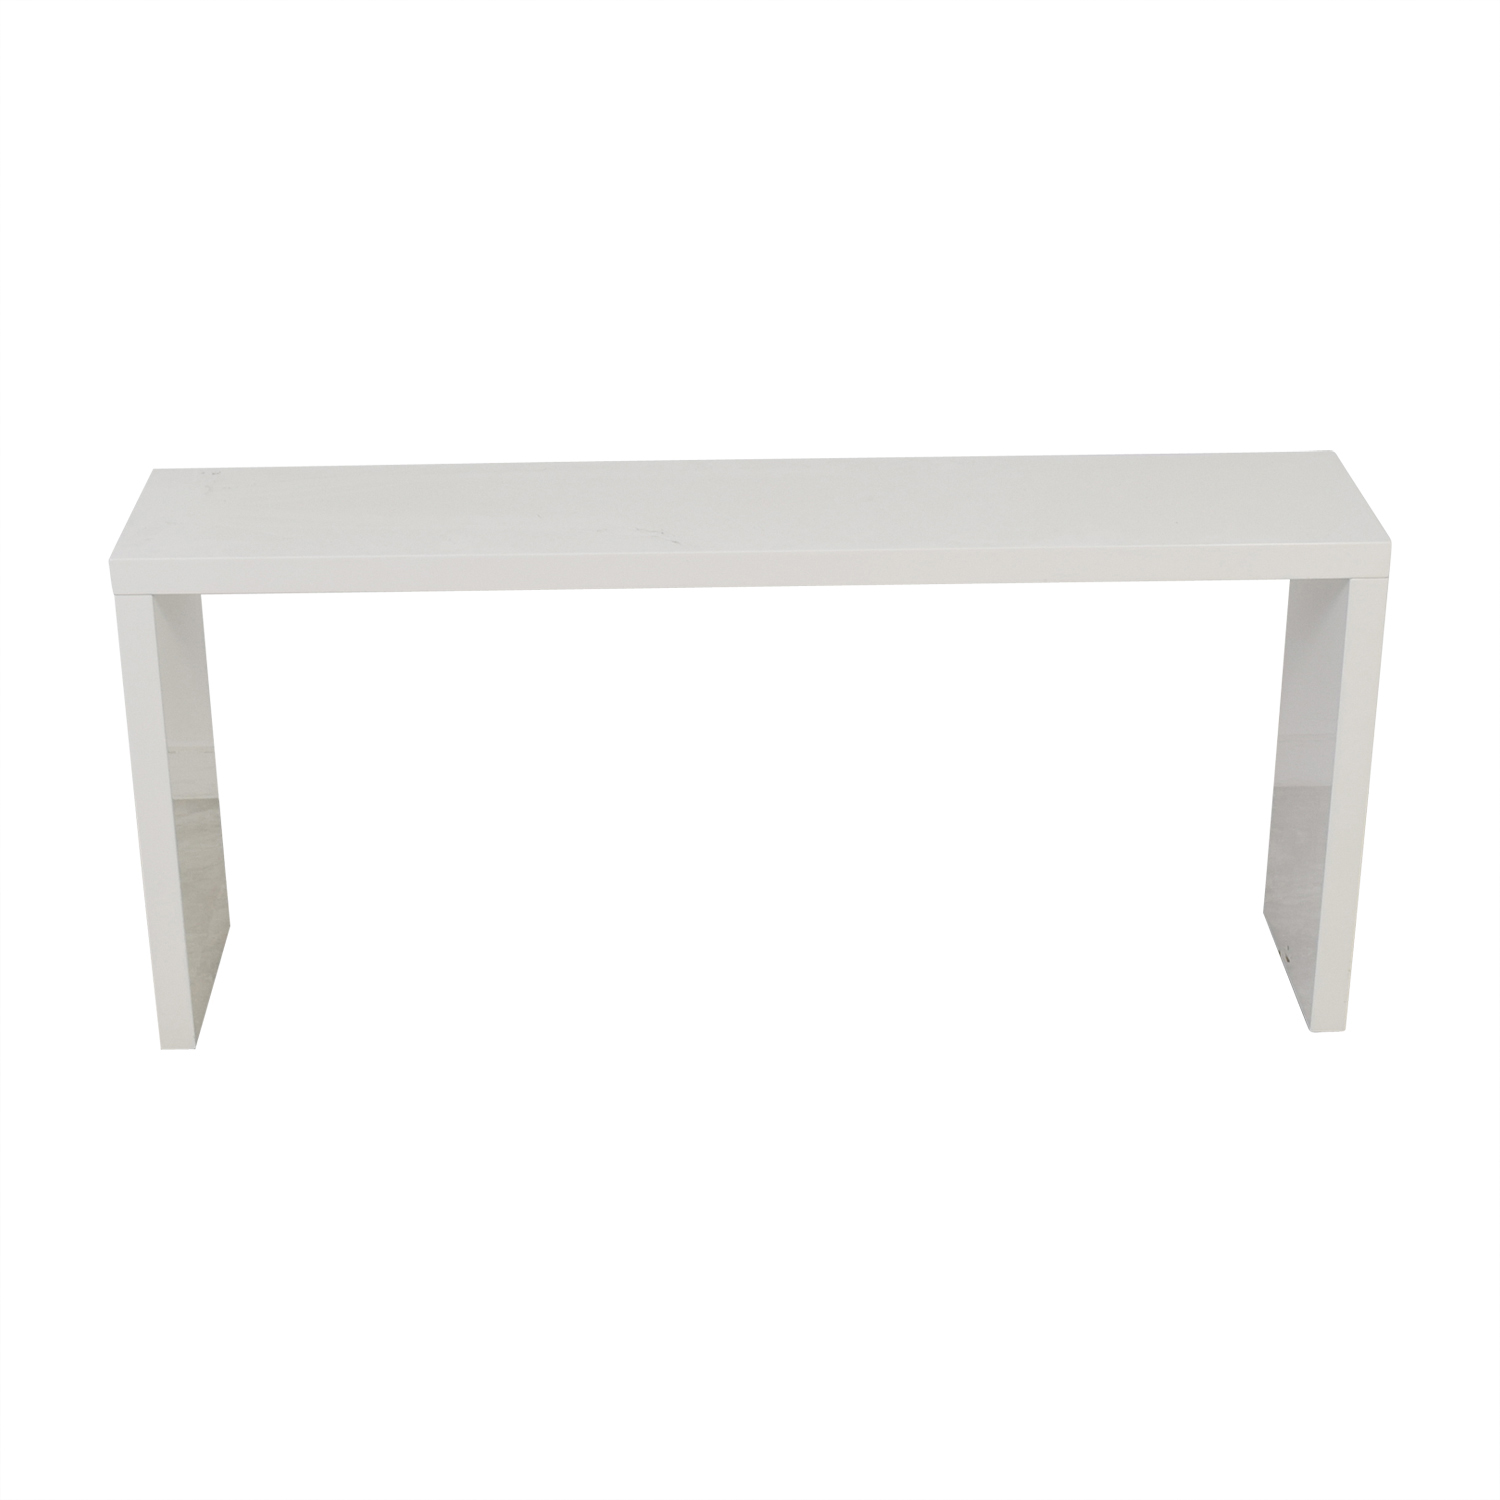 CB2 White Dining Server CB2